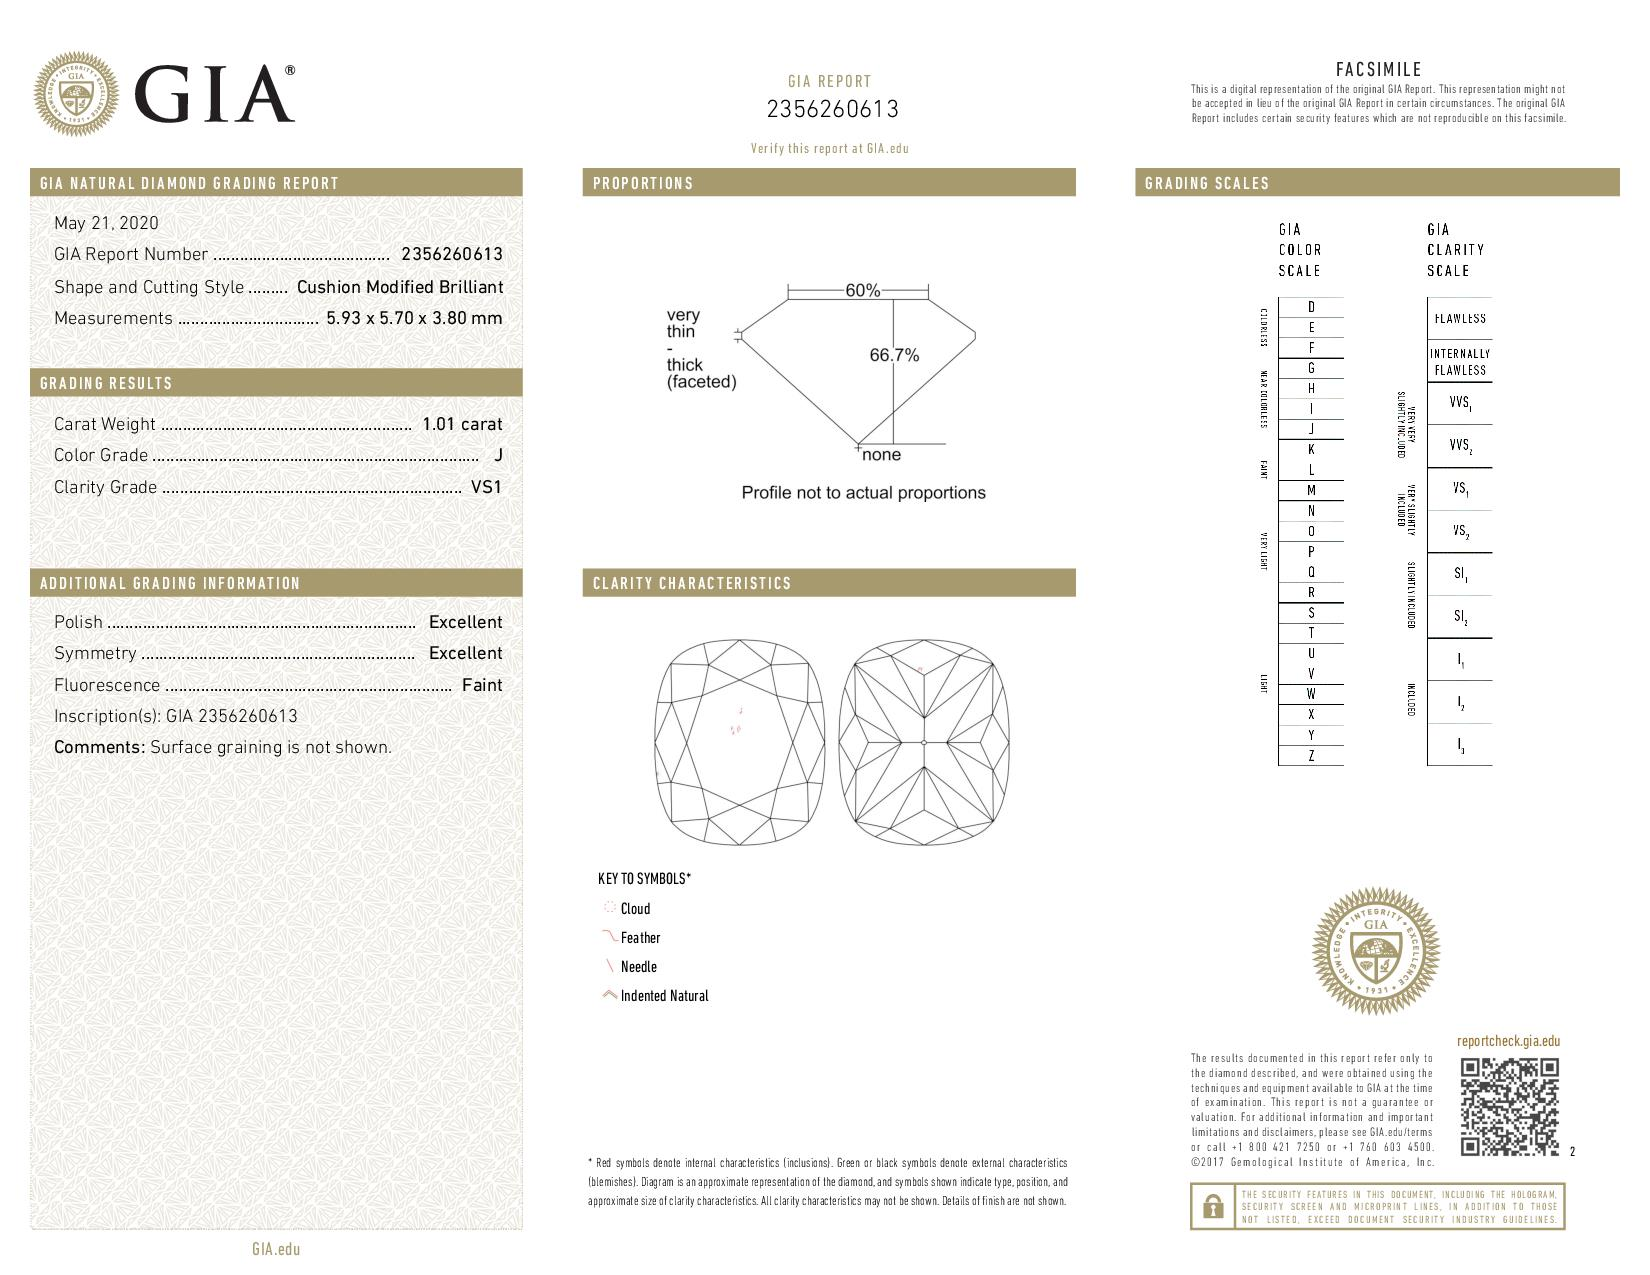 This is a 1.01 carat cushion shape, J color, VS1 clarity natural diamond accompanied by a GIA grading report.